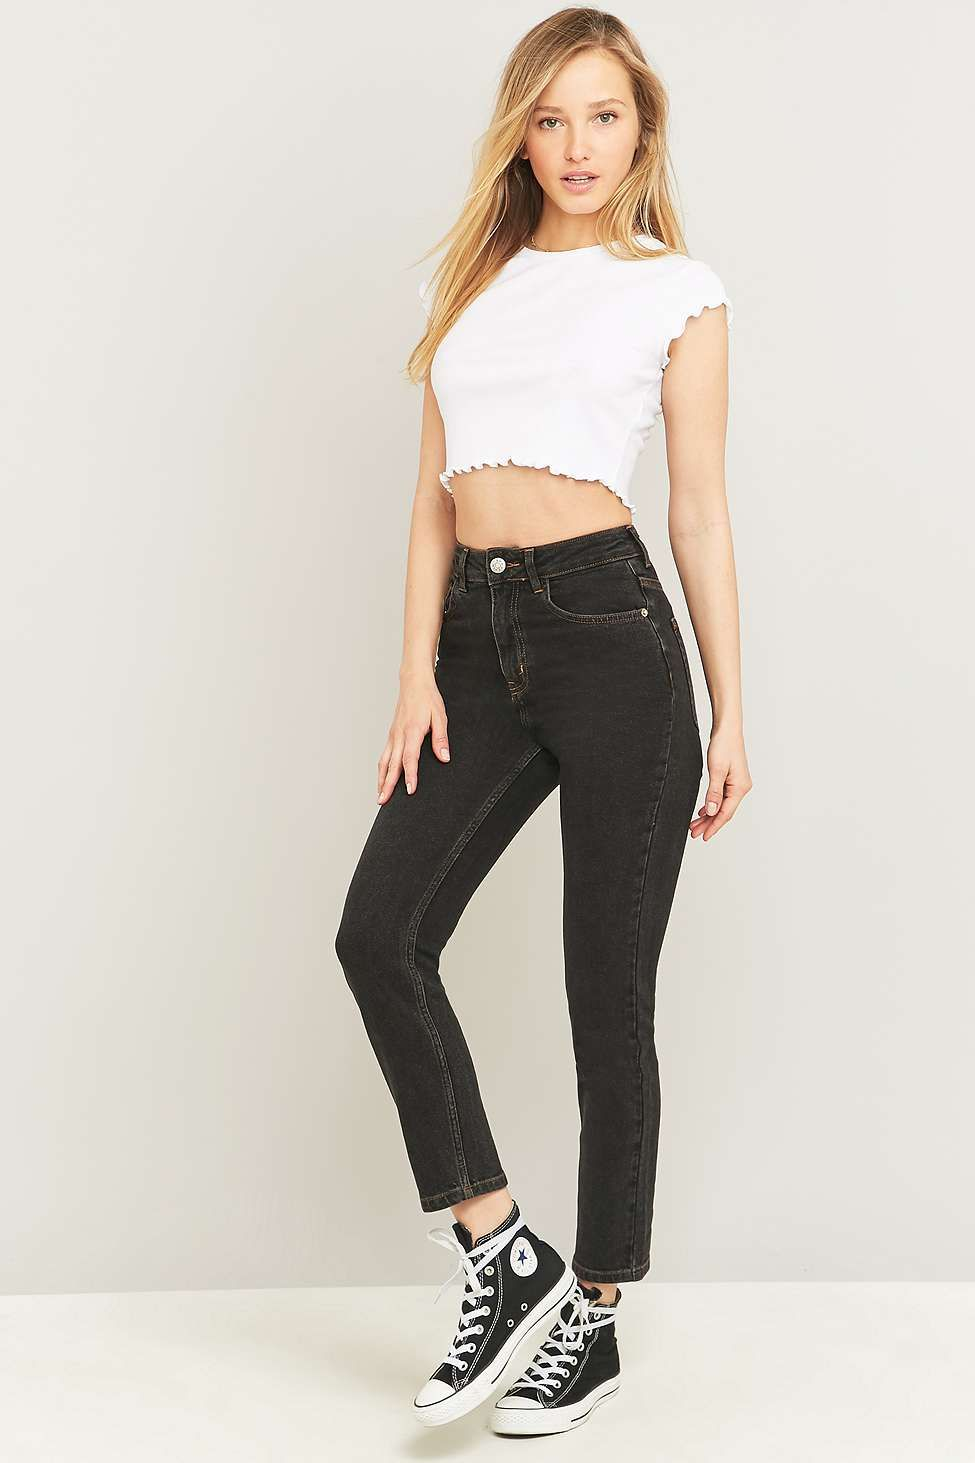 10a0d3bf02d8 BDG High-Waisted Black Girlfriend Jeans - Urban Outfitters